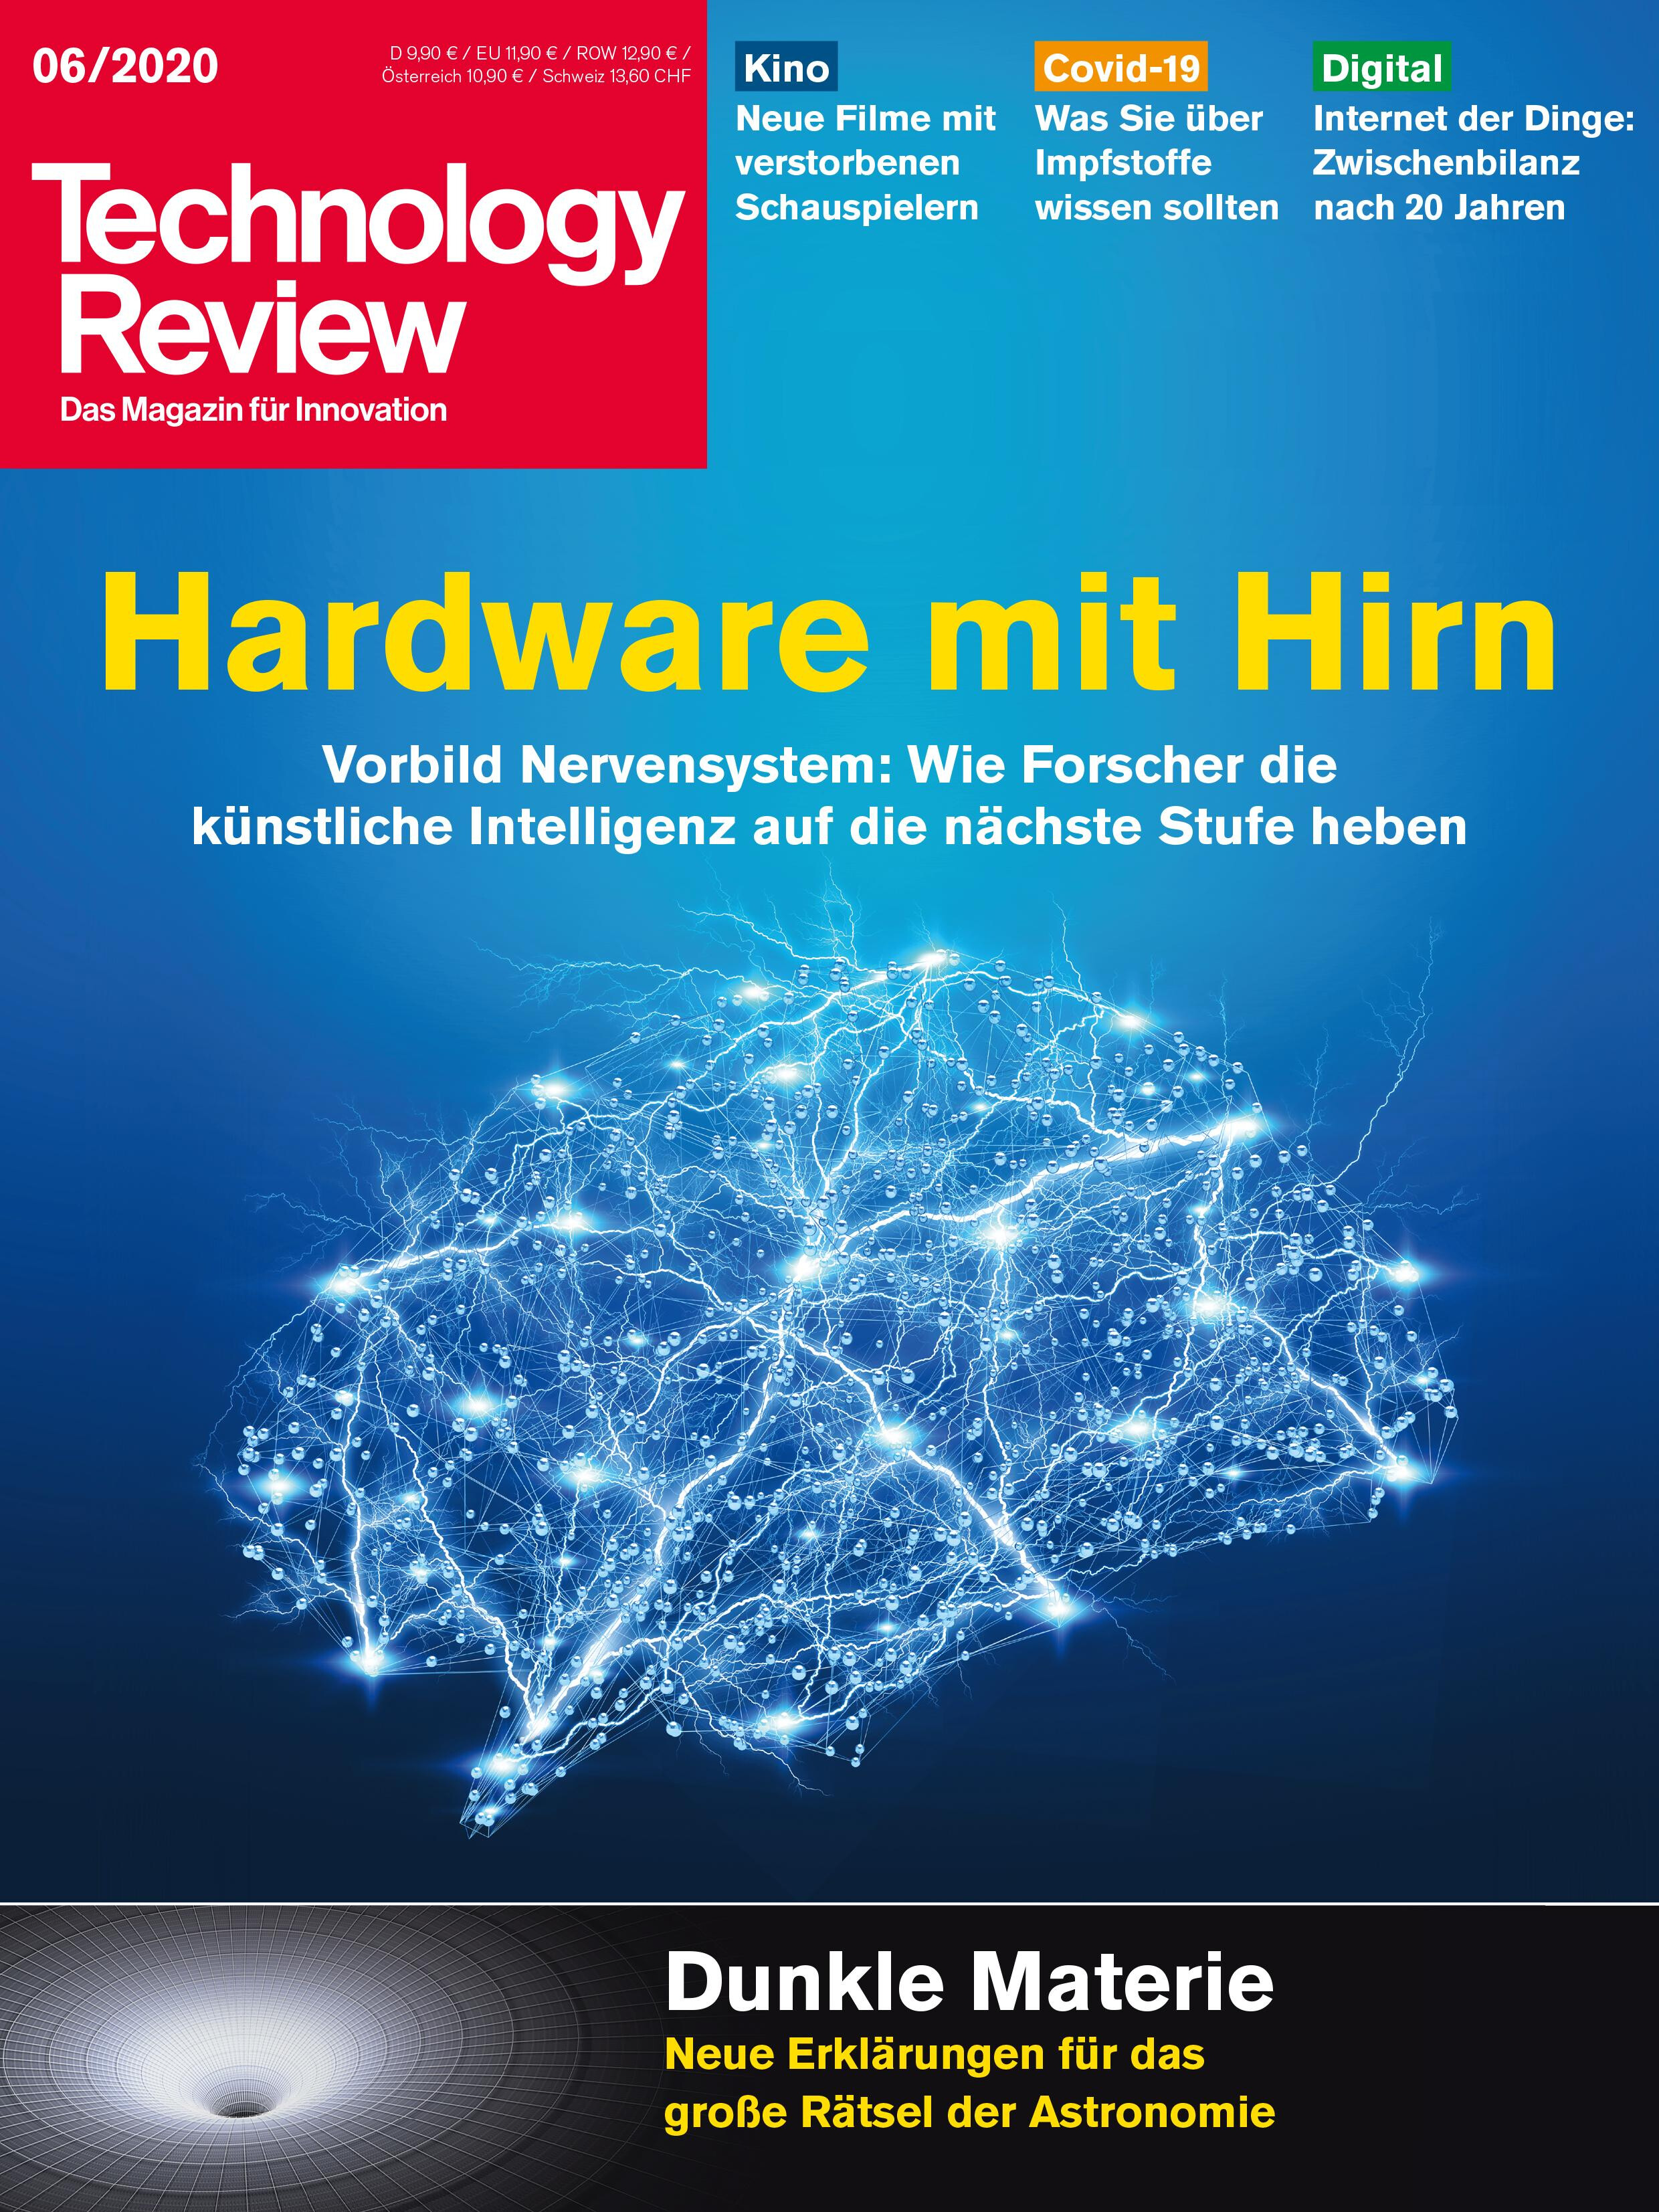 Technology Review 06/2020